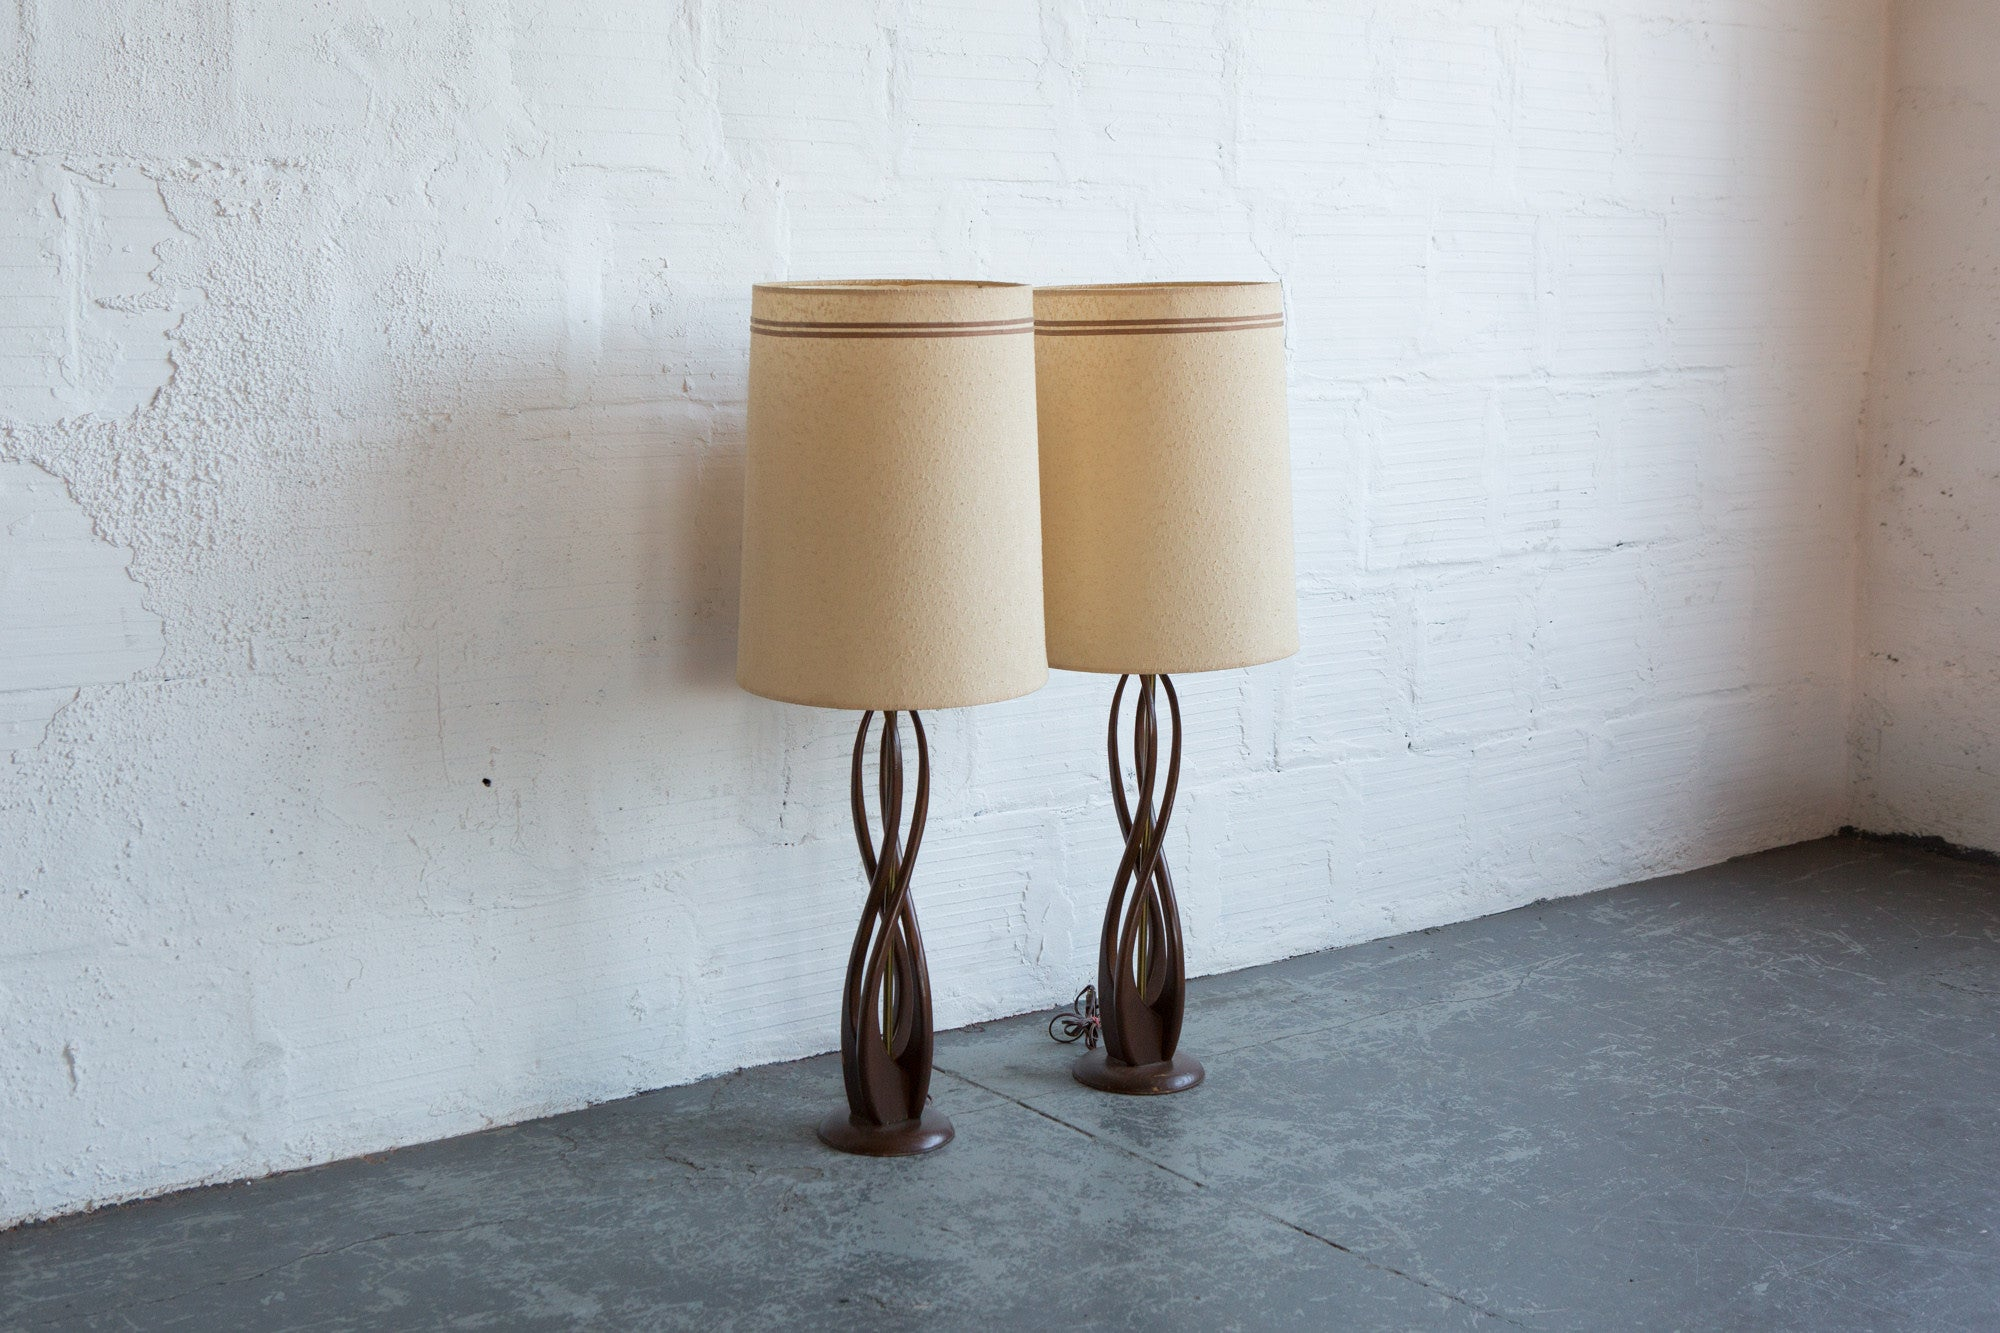 MCM Carved Wood Table Lamp (set of 2) – The Good Mod